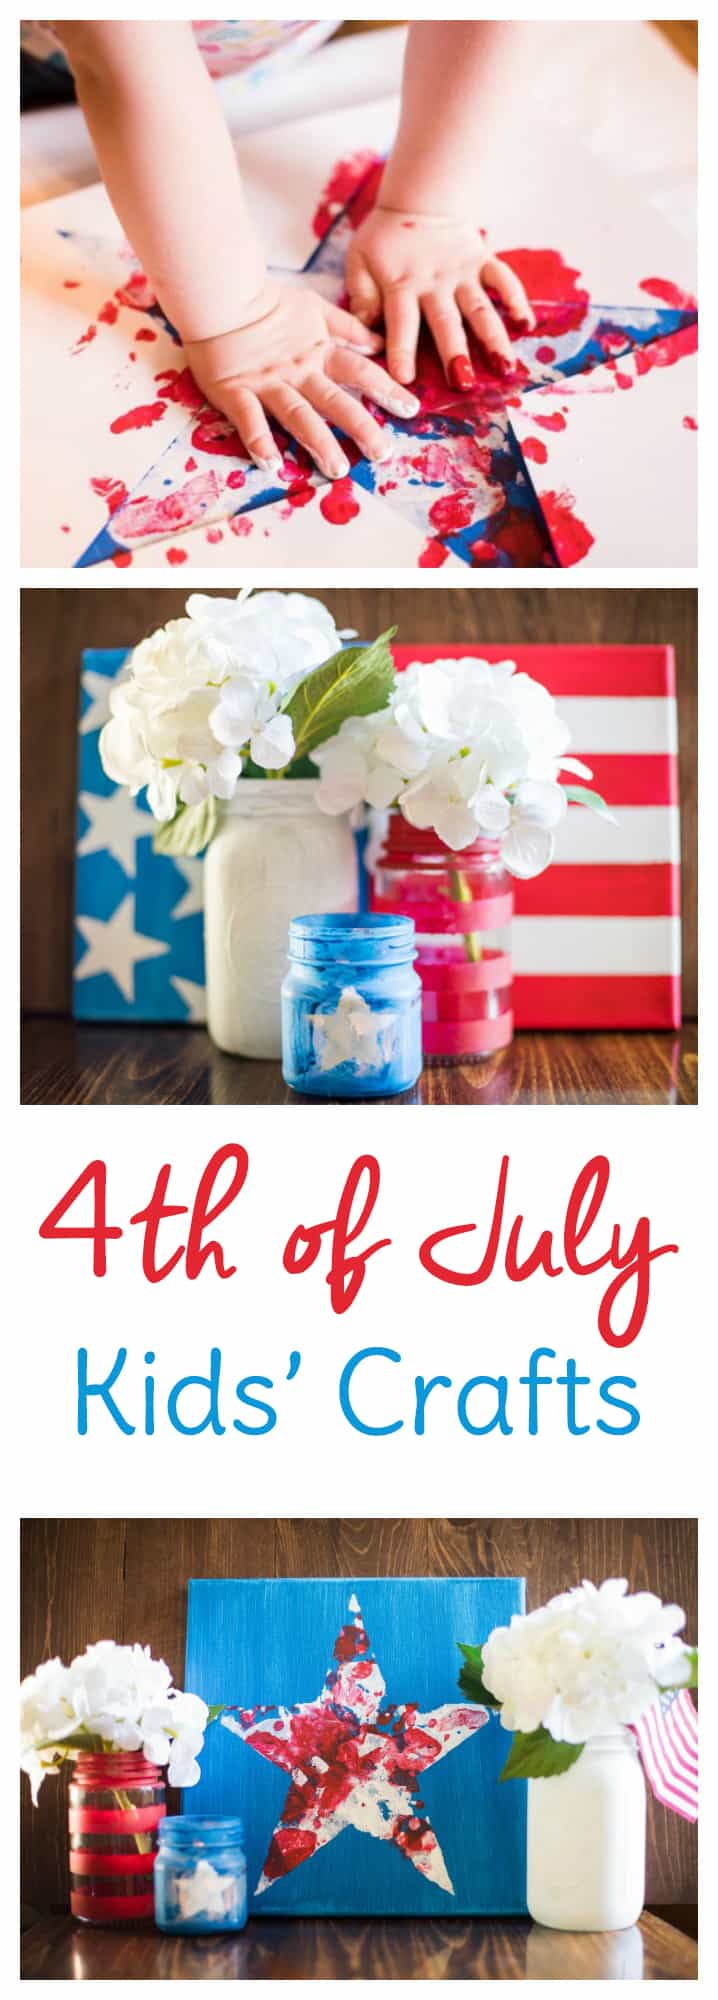 Get your red, white, and blue on while making these 4th of July crafts for kids with your little ones. Combine the American flag crafts kids can make with the messy fun of the 4th of July crafts for preschoolers to make a beautiful patriotic tabletop setting or home decor set.